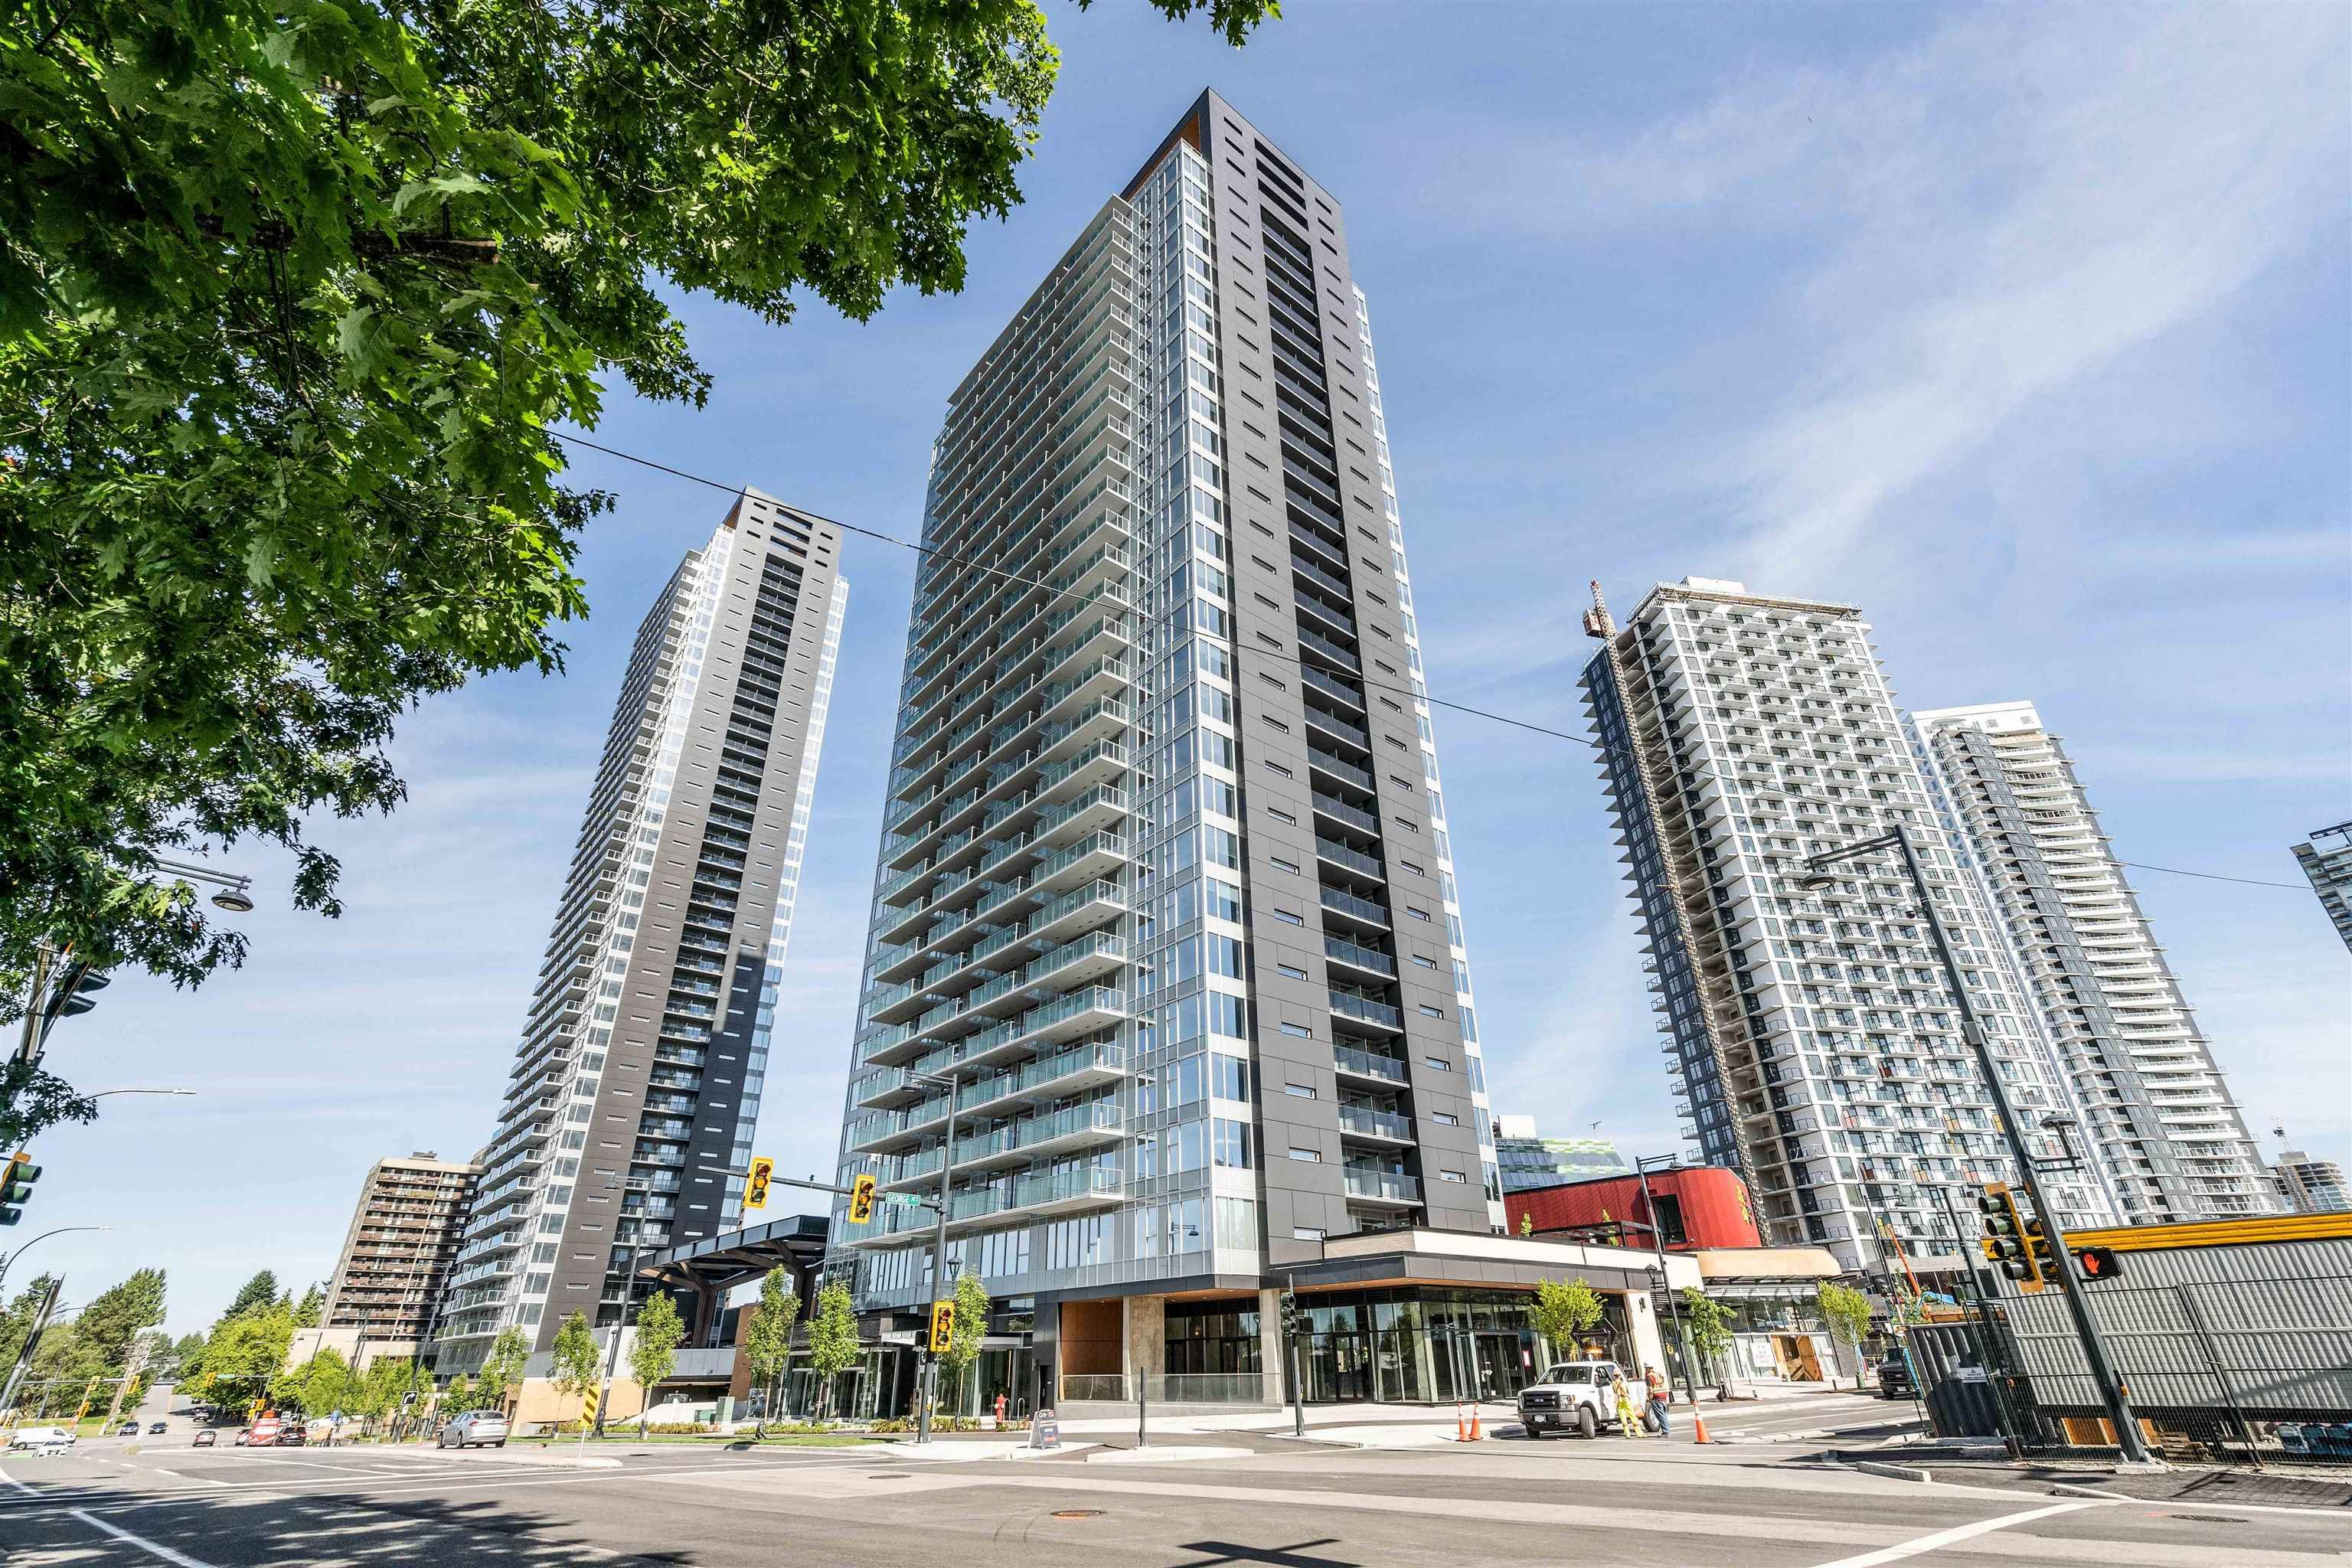 """Main Photo: 403 13655 FRASER HIGHWAY in Surrey: Whalley Condo for sale in """"KING GEORGE HUB - HUB 2"""" (North Surrey)  : MLS®# R2617379"""